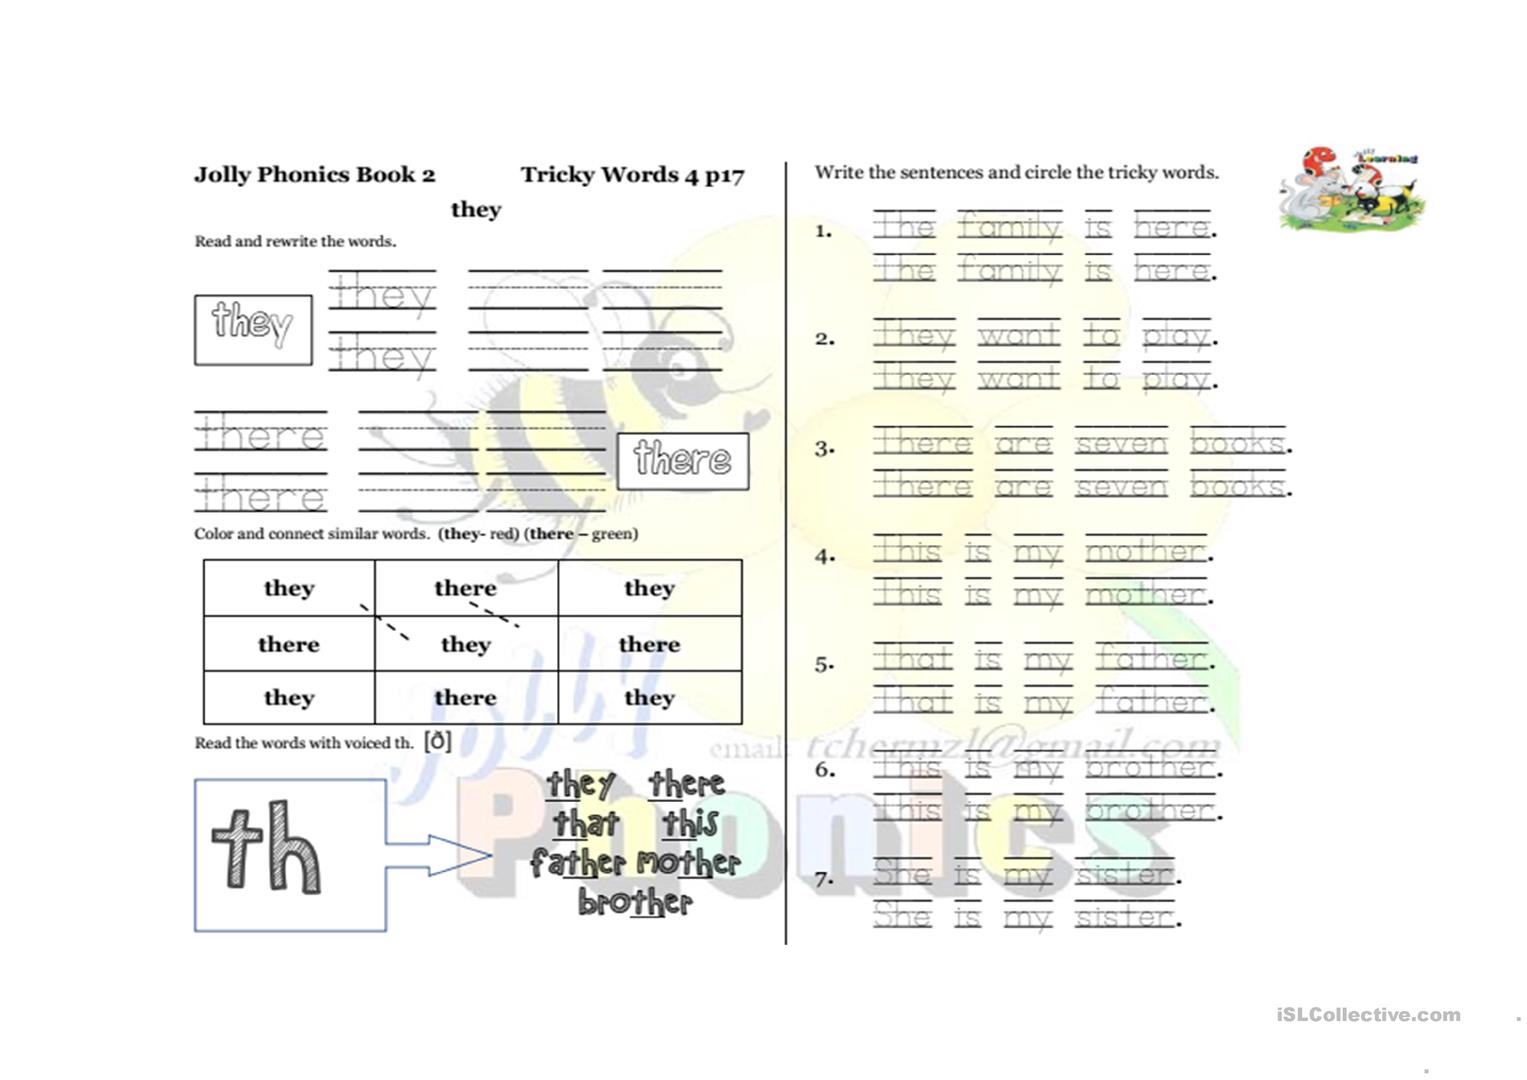 Workbooks jolly phonics workbook 1 free download : Jolly Phonics 2 Tricky words page 17 worksheet - Free ESL ...